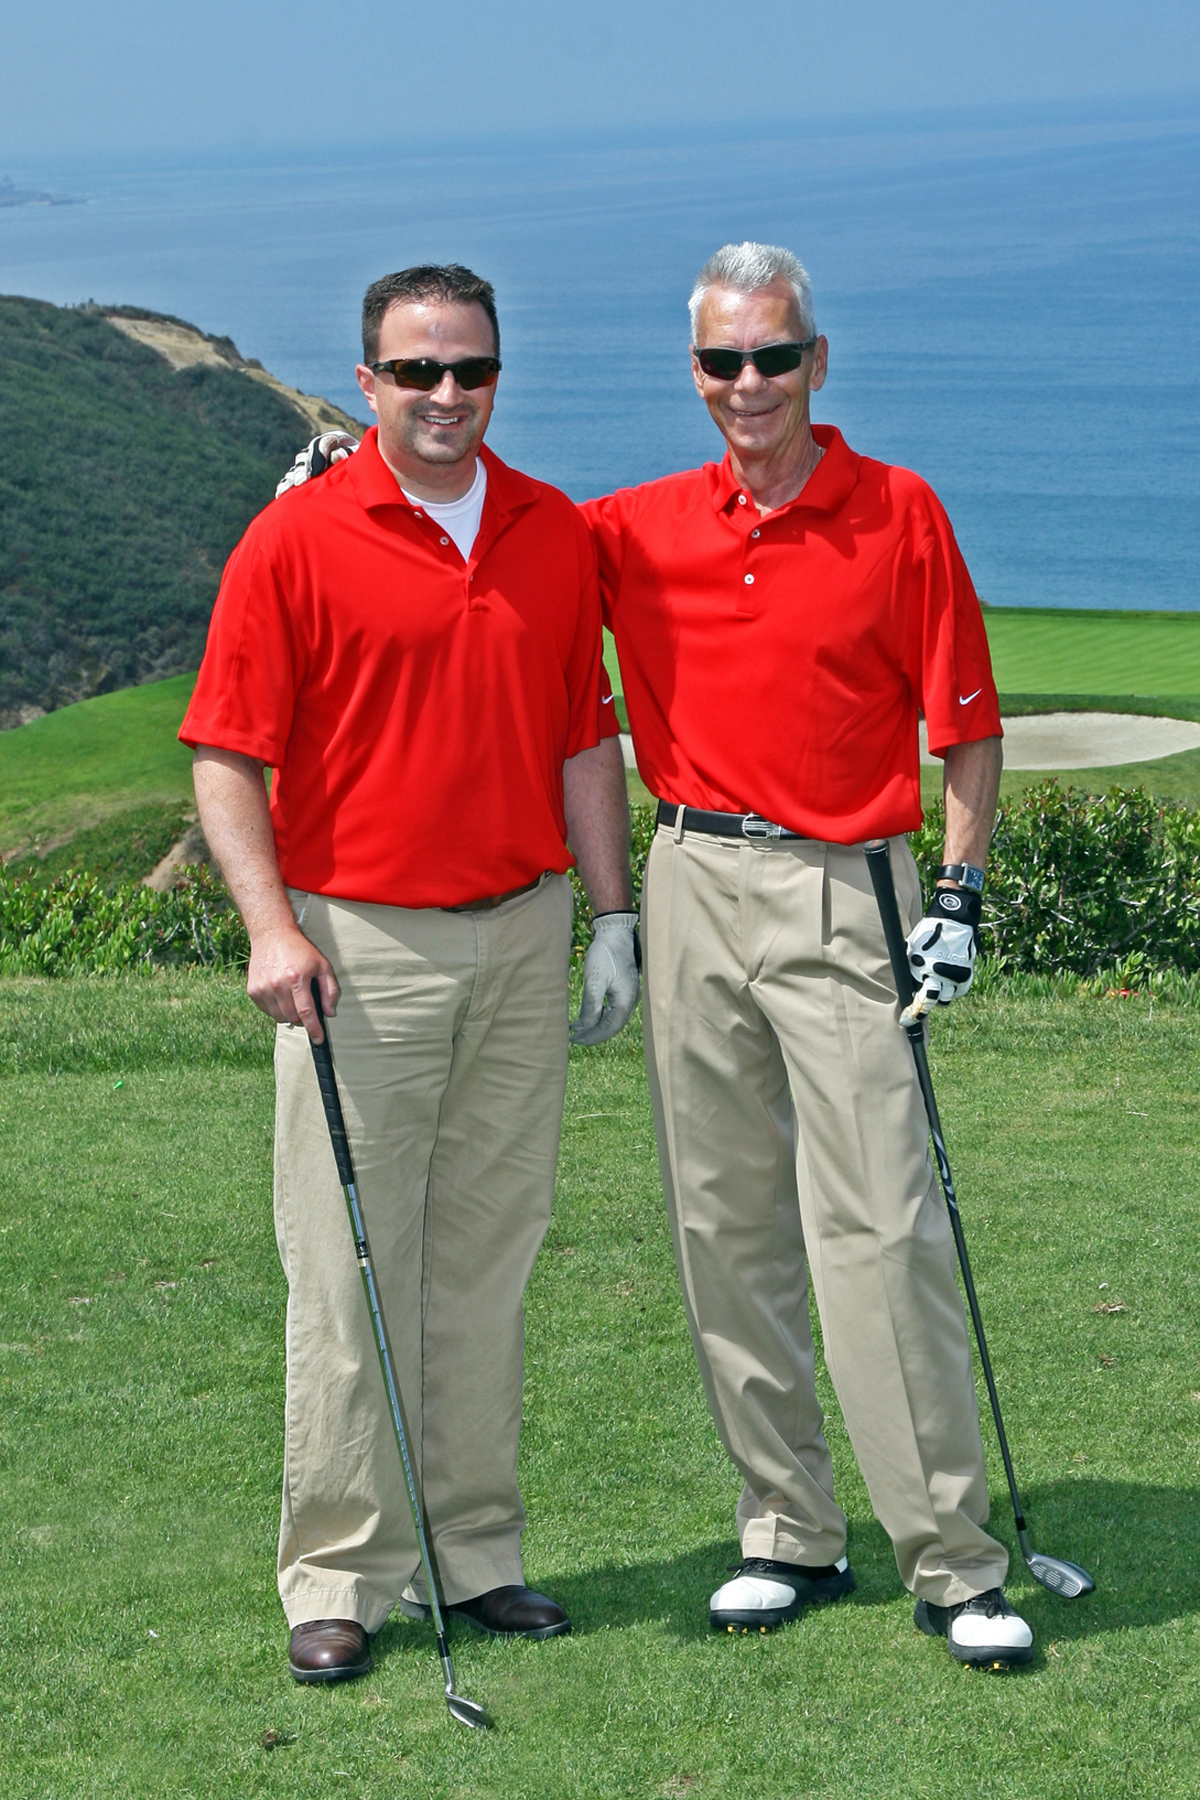 V Father and Son 2009 CR Torrey Pines 070 edit.jpg